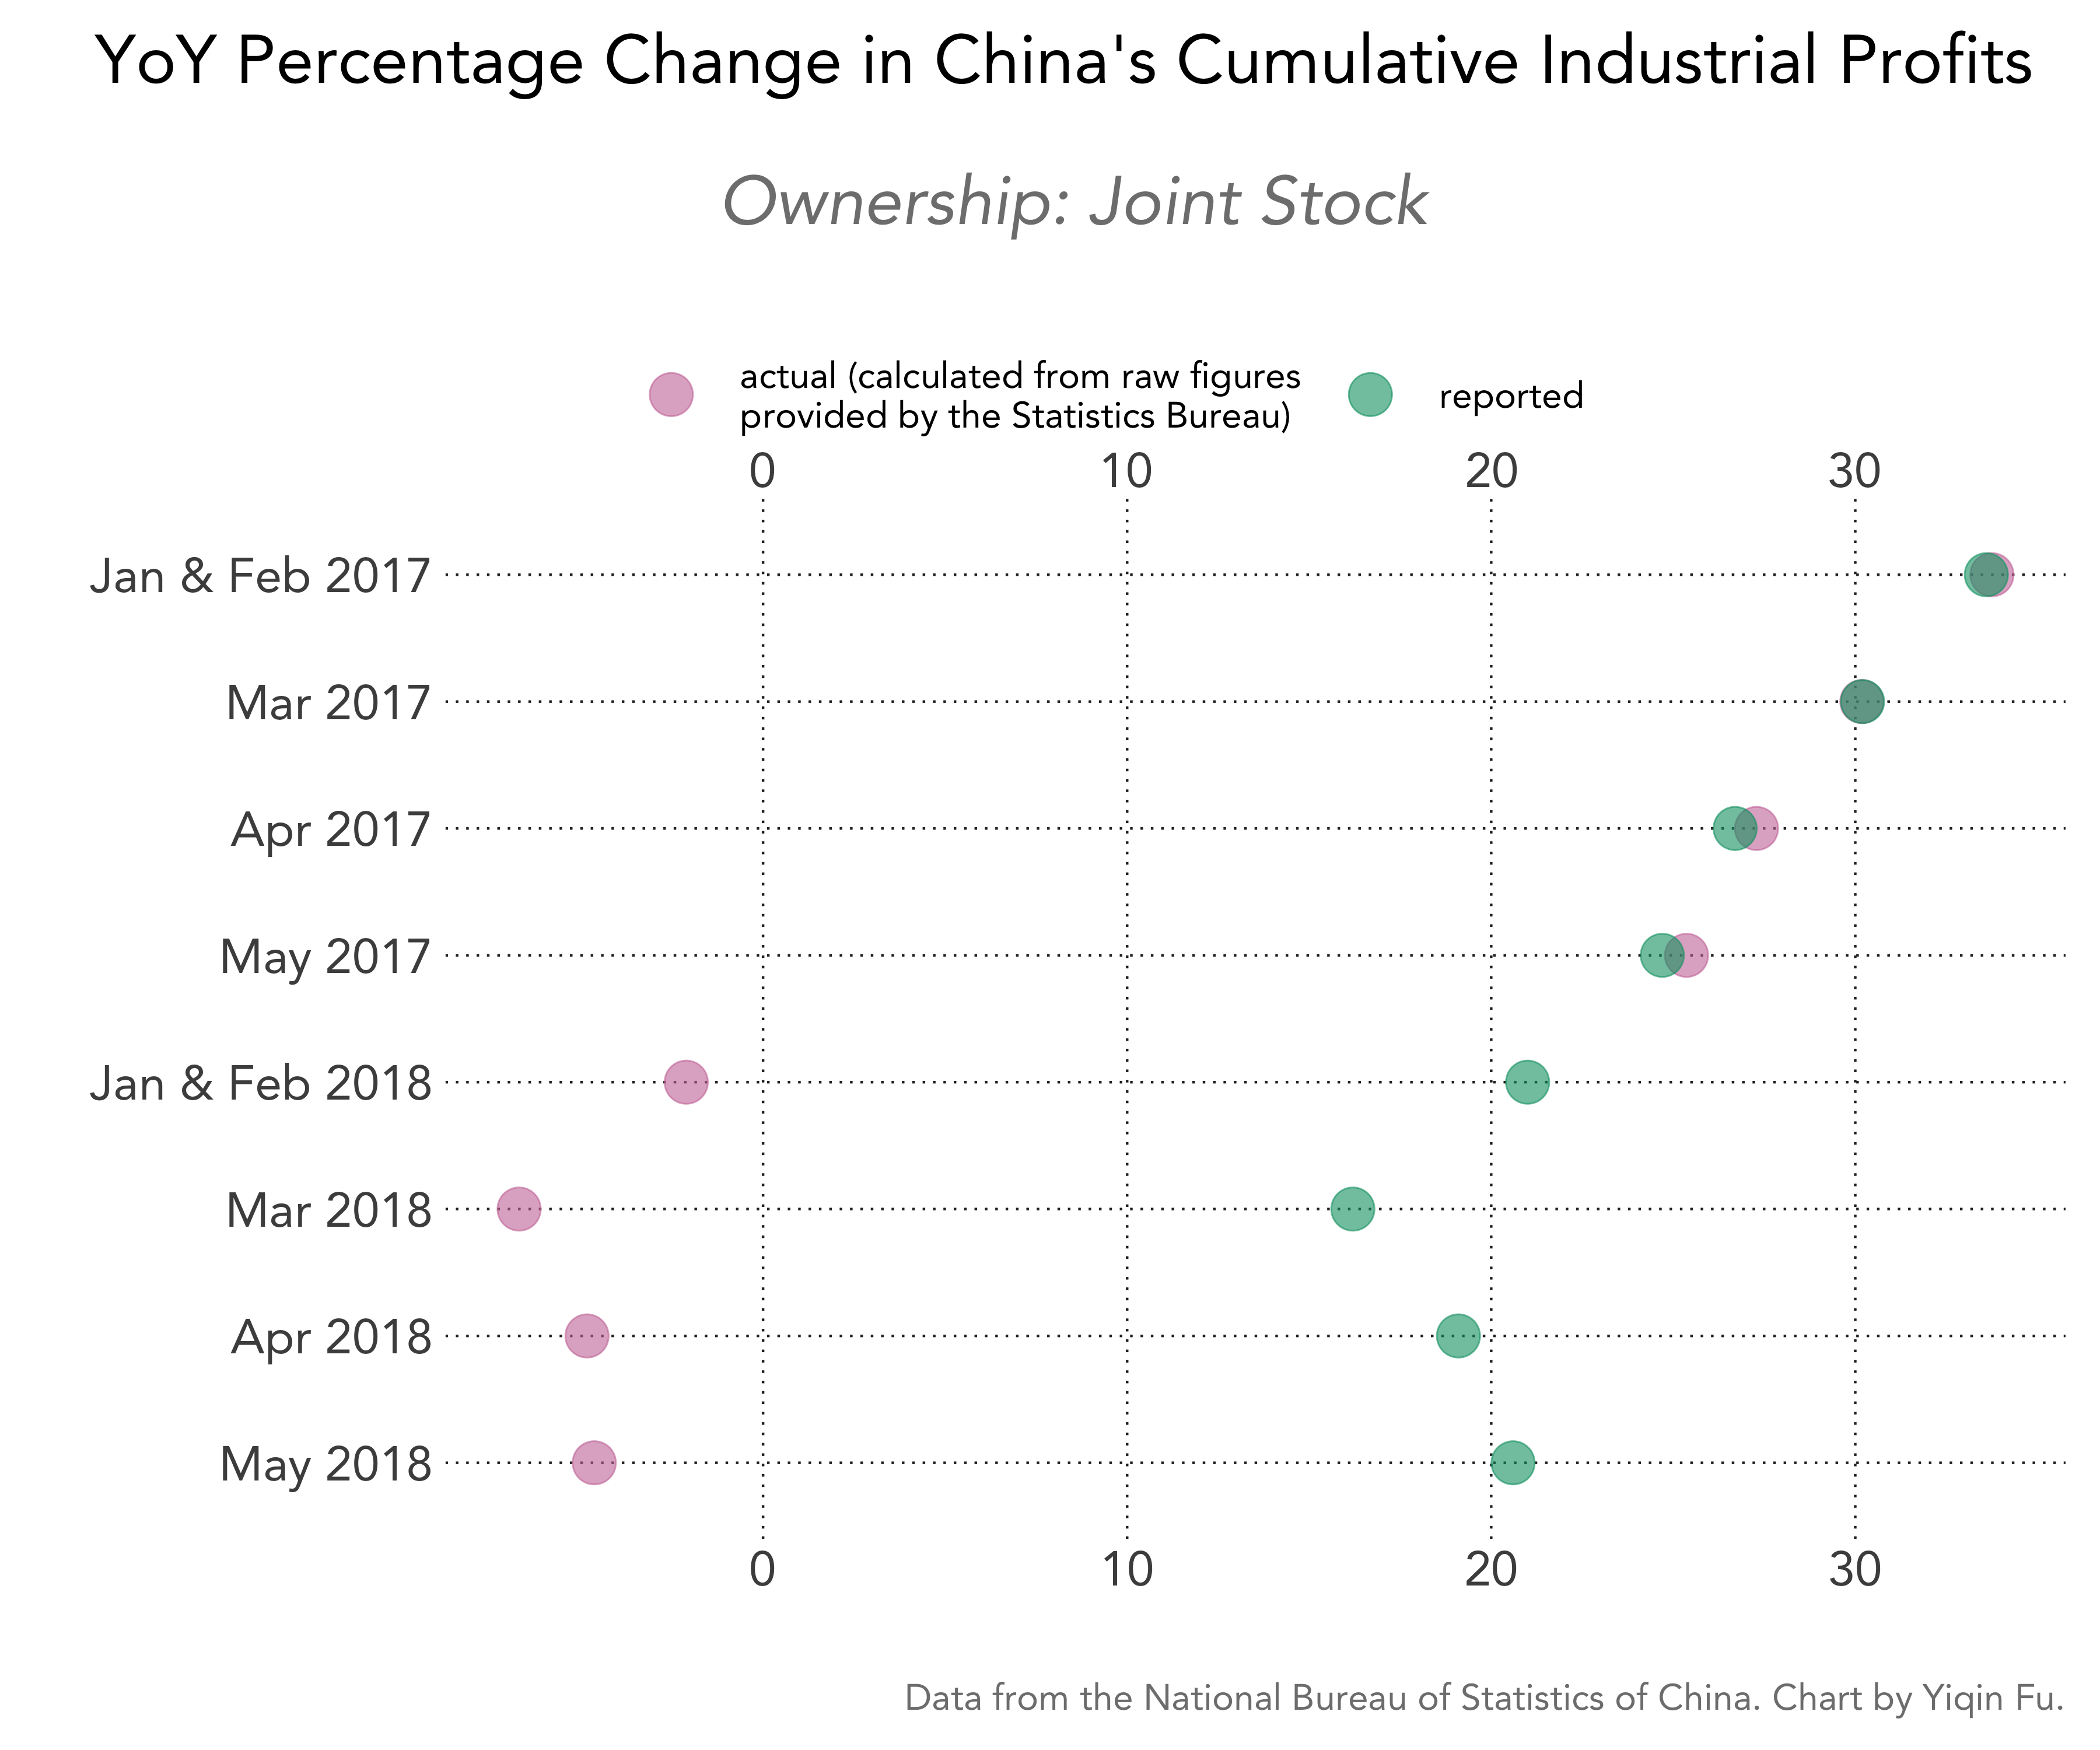 china-cumulative-industrial-profits-pct-change-actual-vs-reported-joint-stock